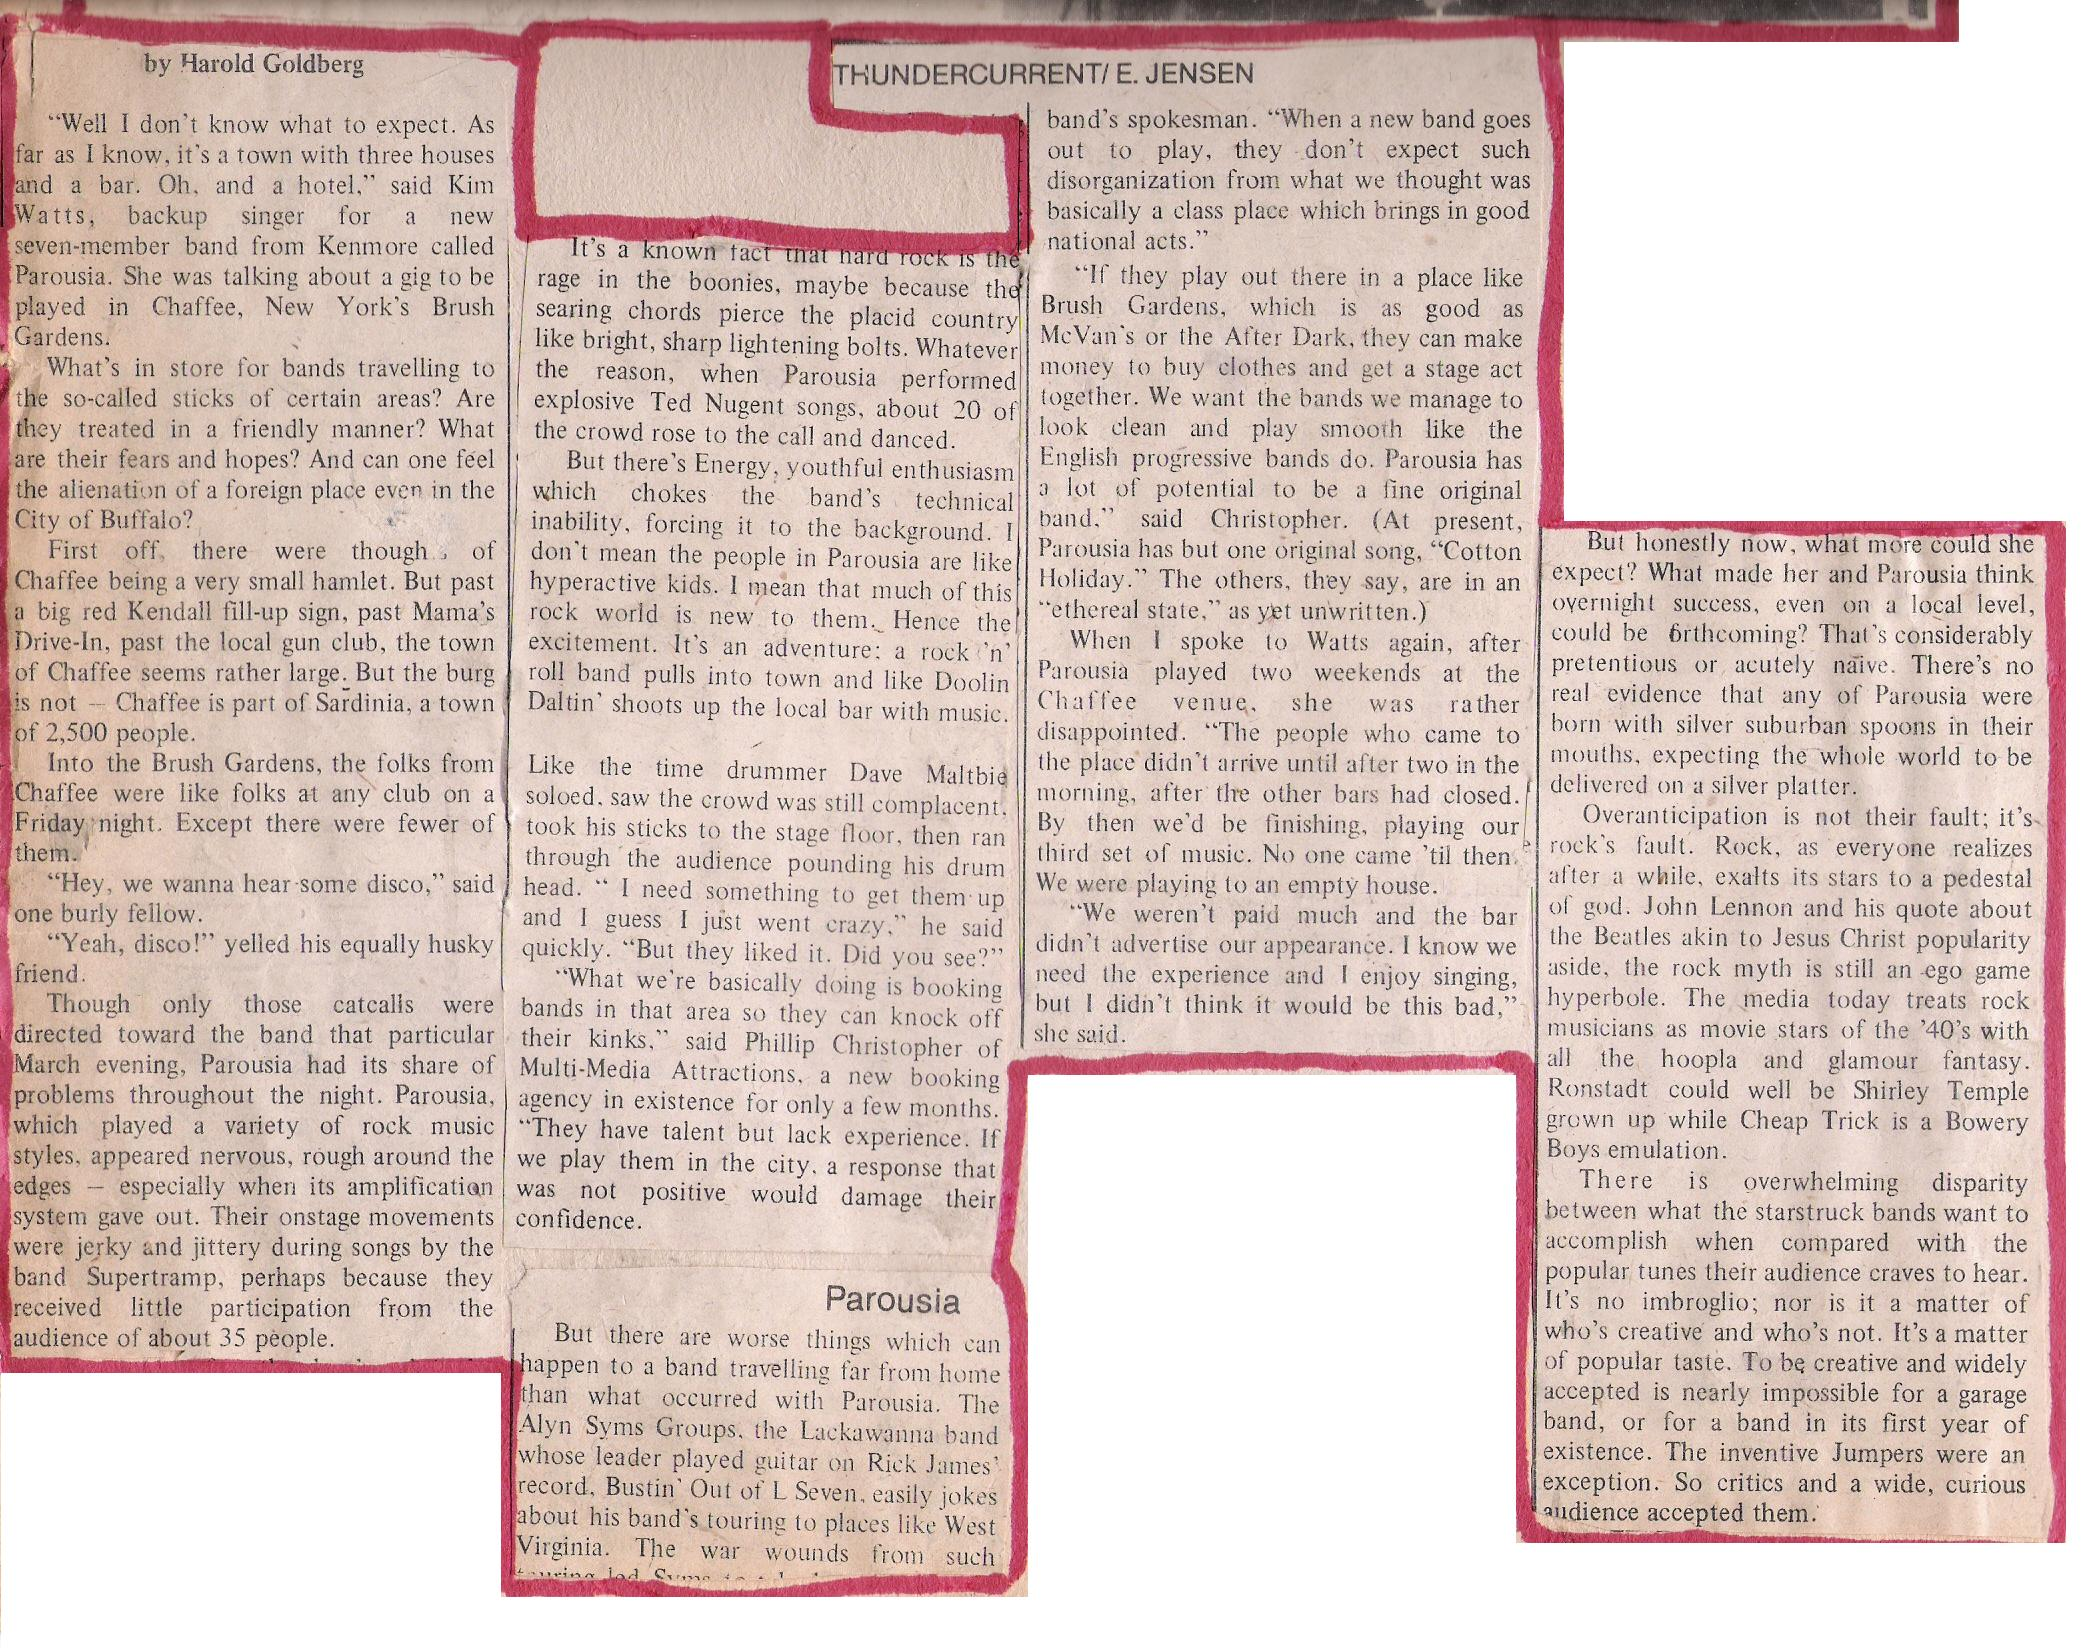 'Worlds Thunder Current', Sept. 4th 1979. Review of Brush Garden's performances March '9 (bottom)